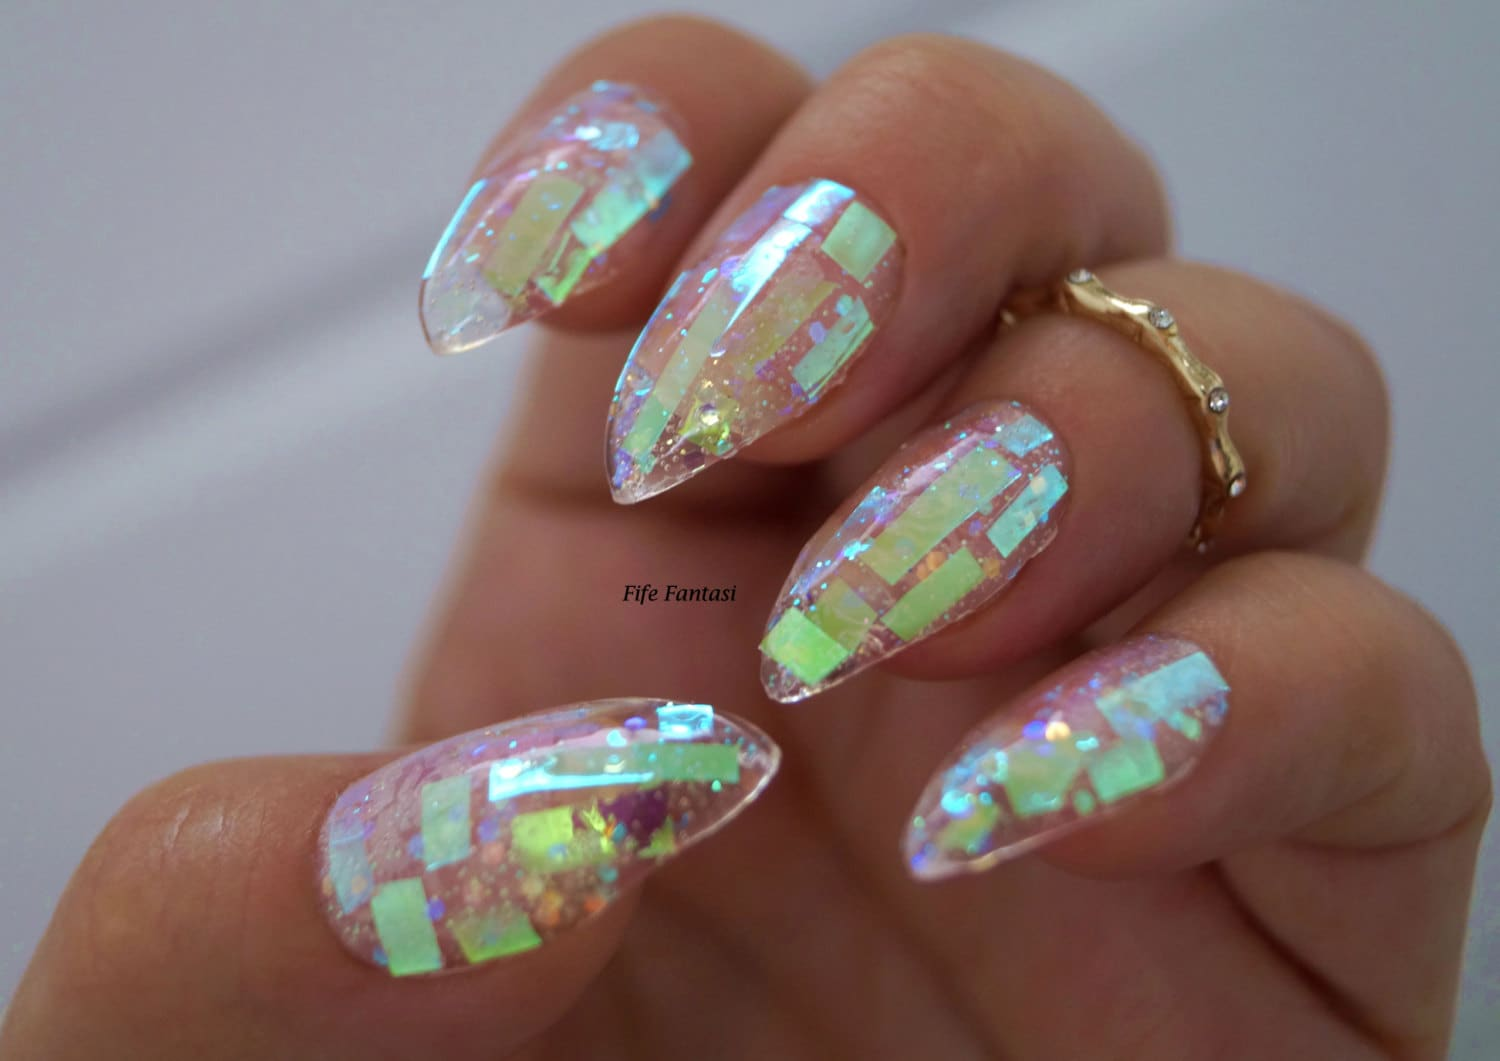 Shattered Glass Nails, Nail designs, Nail art, Nails, Stiletto nails ...